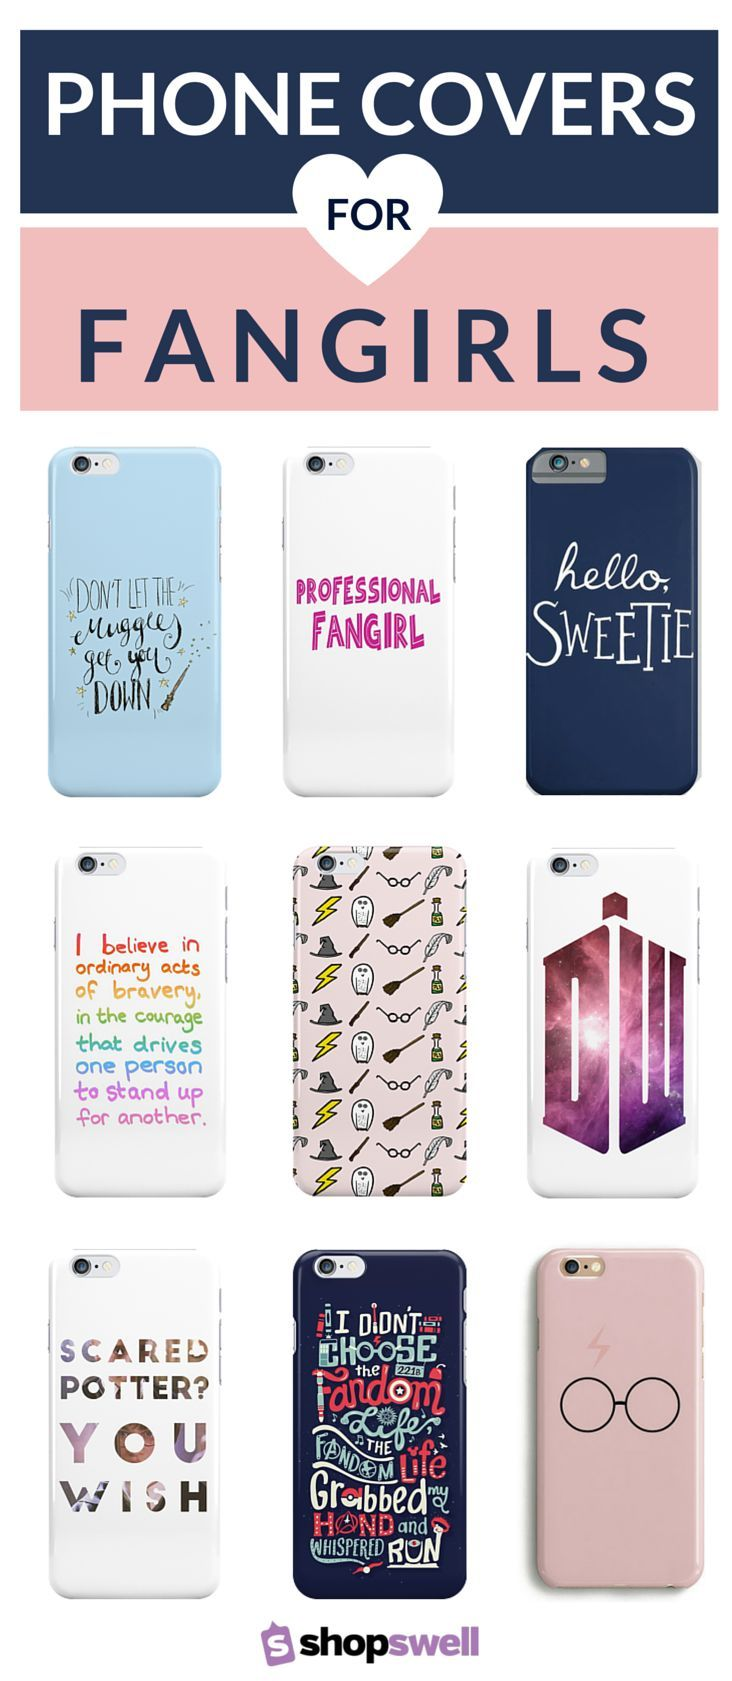 Get your geek on with one of these phone covers sure to make any fangirl squeal. Click through to shop the fangirl phone cover collection.